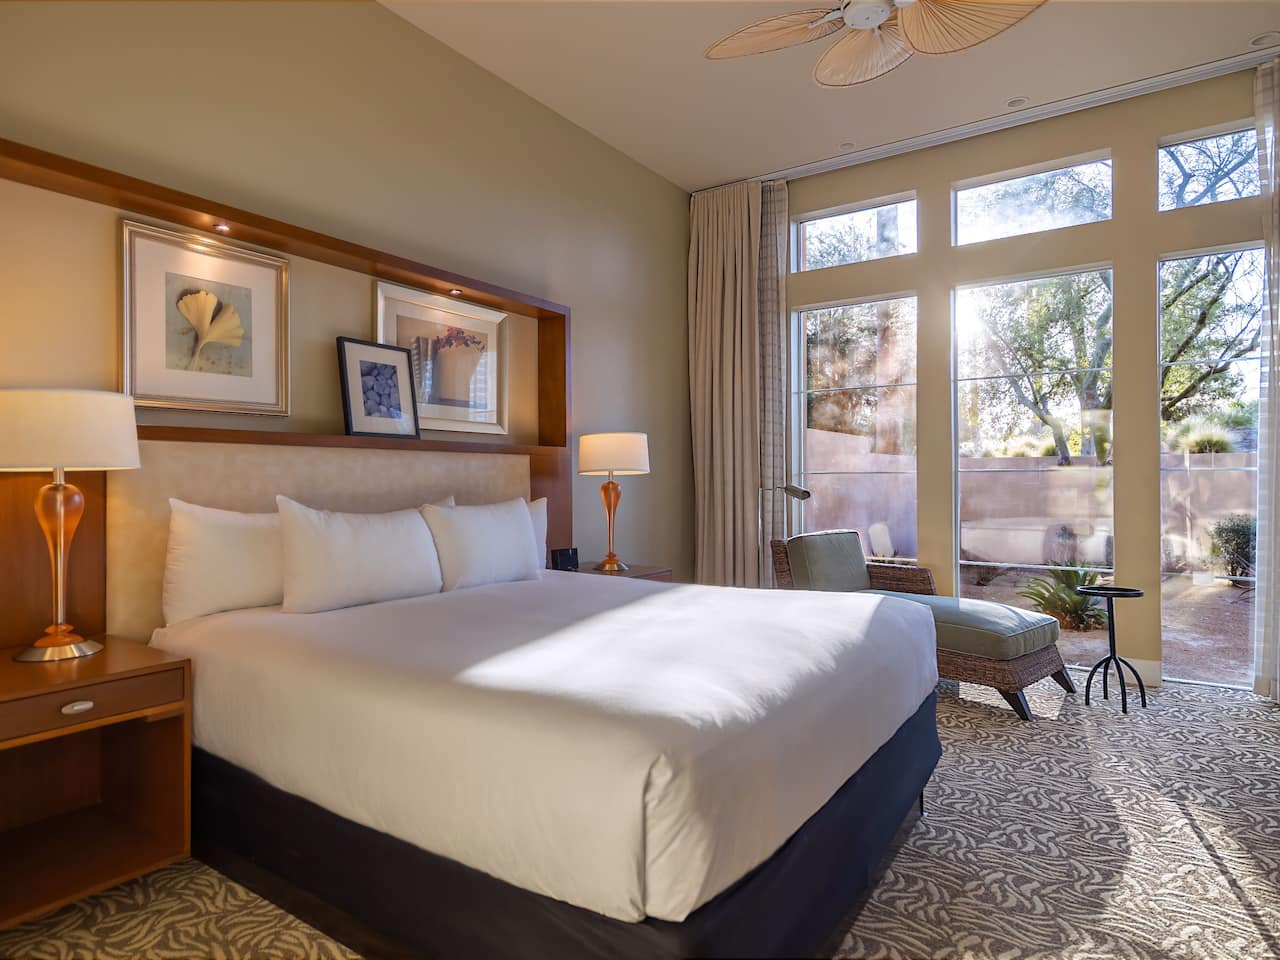 A brightly lit villa bedroom at Hyatt Regency Indian Wells Resort & Spa